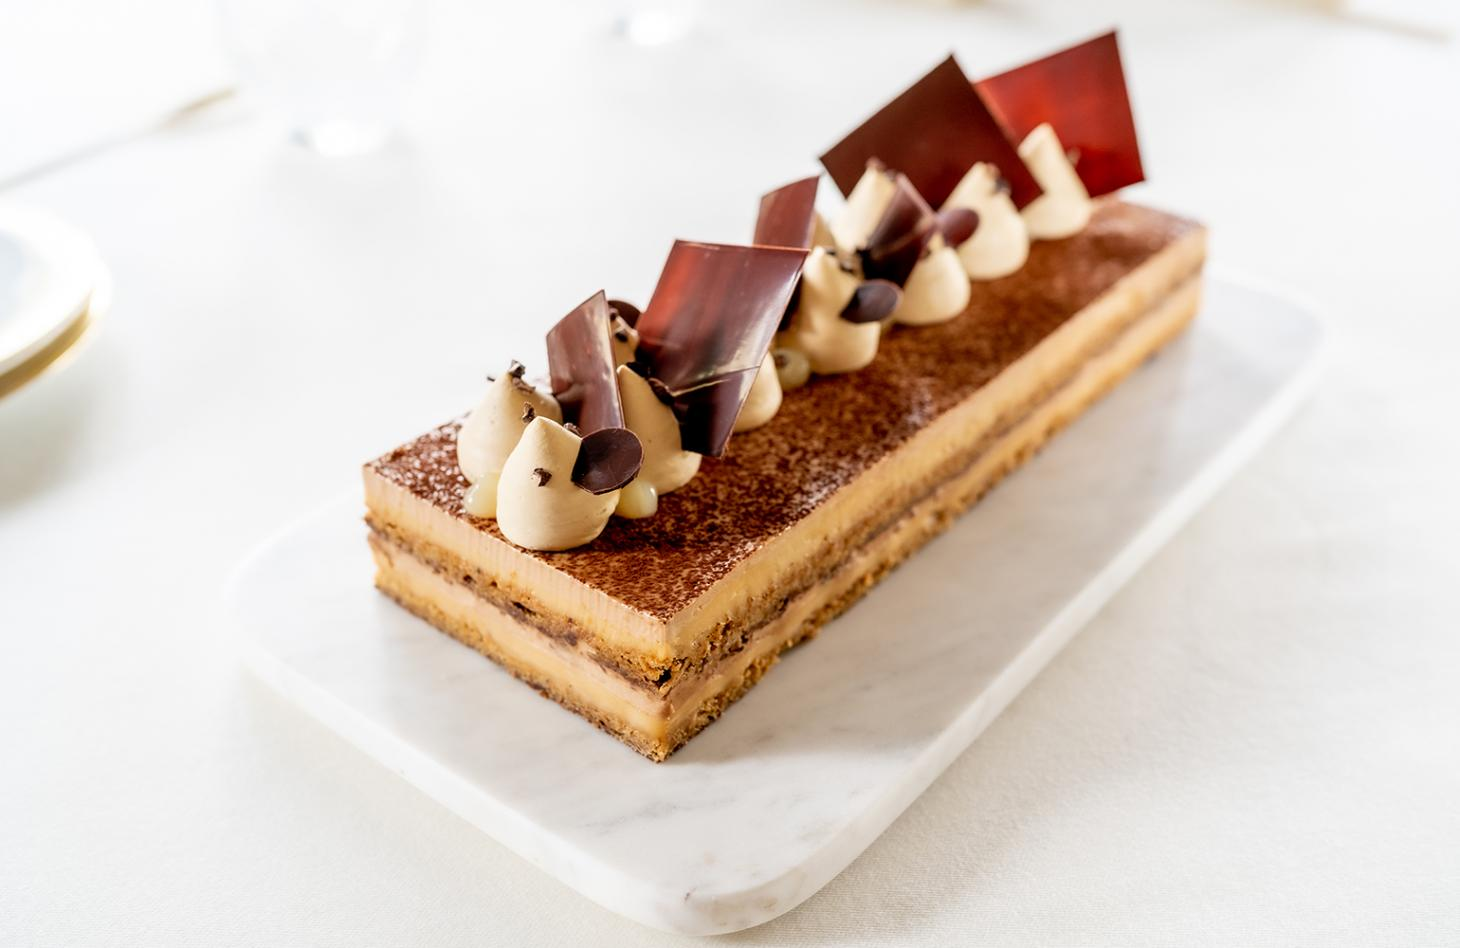 Maracaibo 65 Chocolate and Malted Barley Gateaux at Lalique restaurant at The Glenturret distillery in Scotland